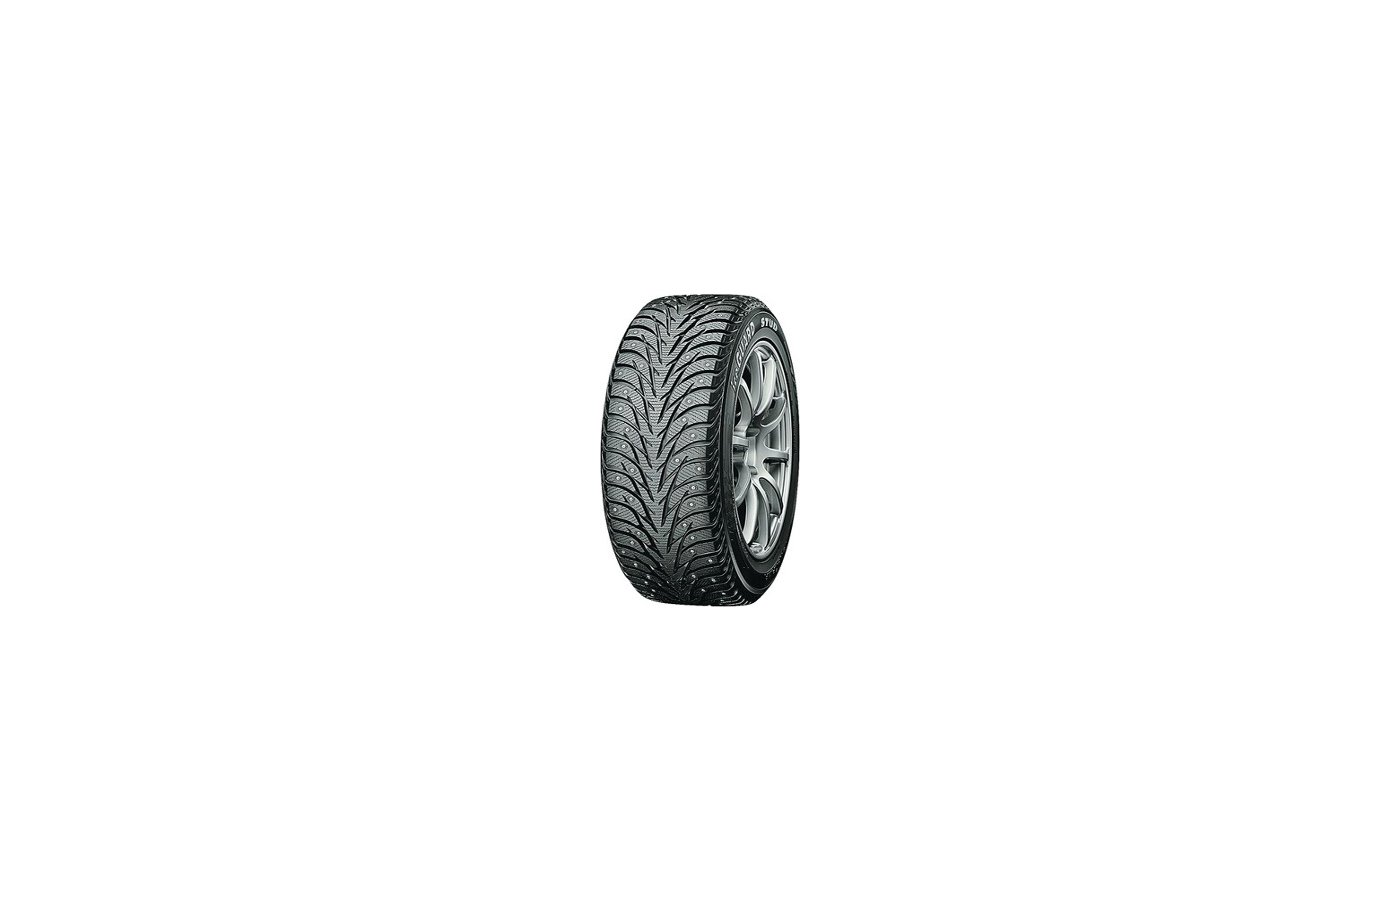 Шина Yokohama Ice Guard IG35 Plus 255/50 R19 TL 107T шип